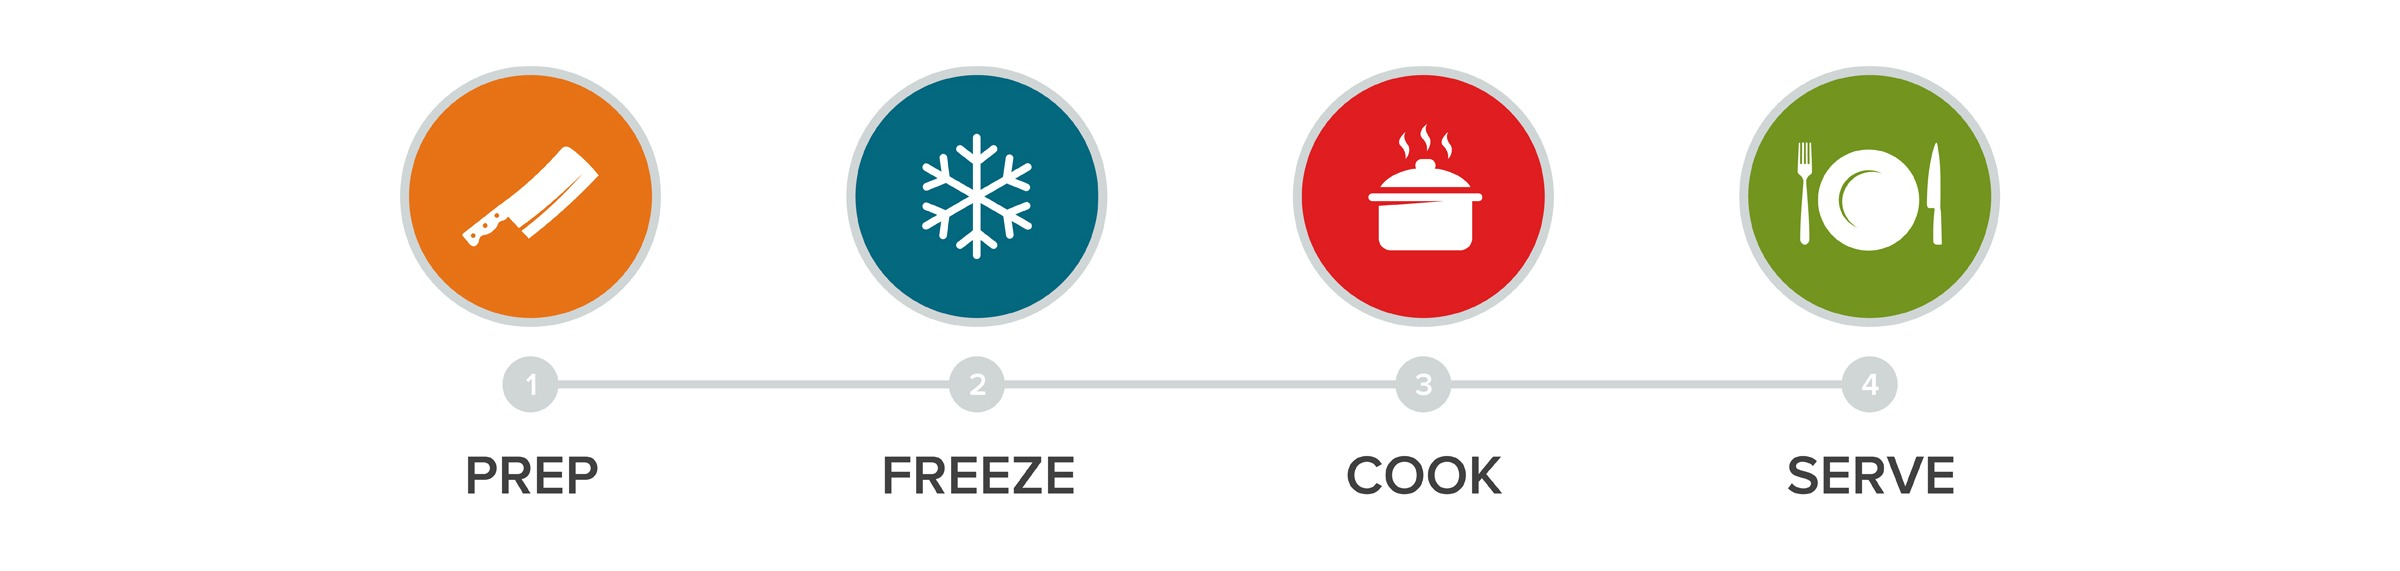 FreezEasy HowTo Steps